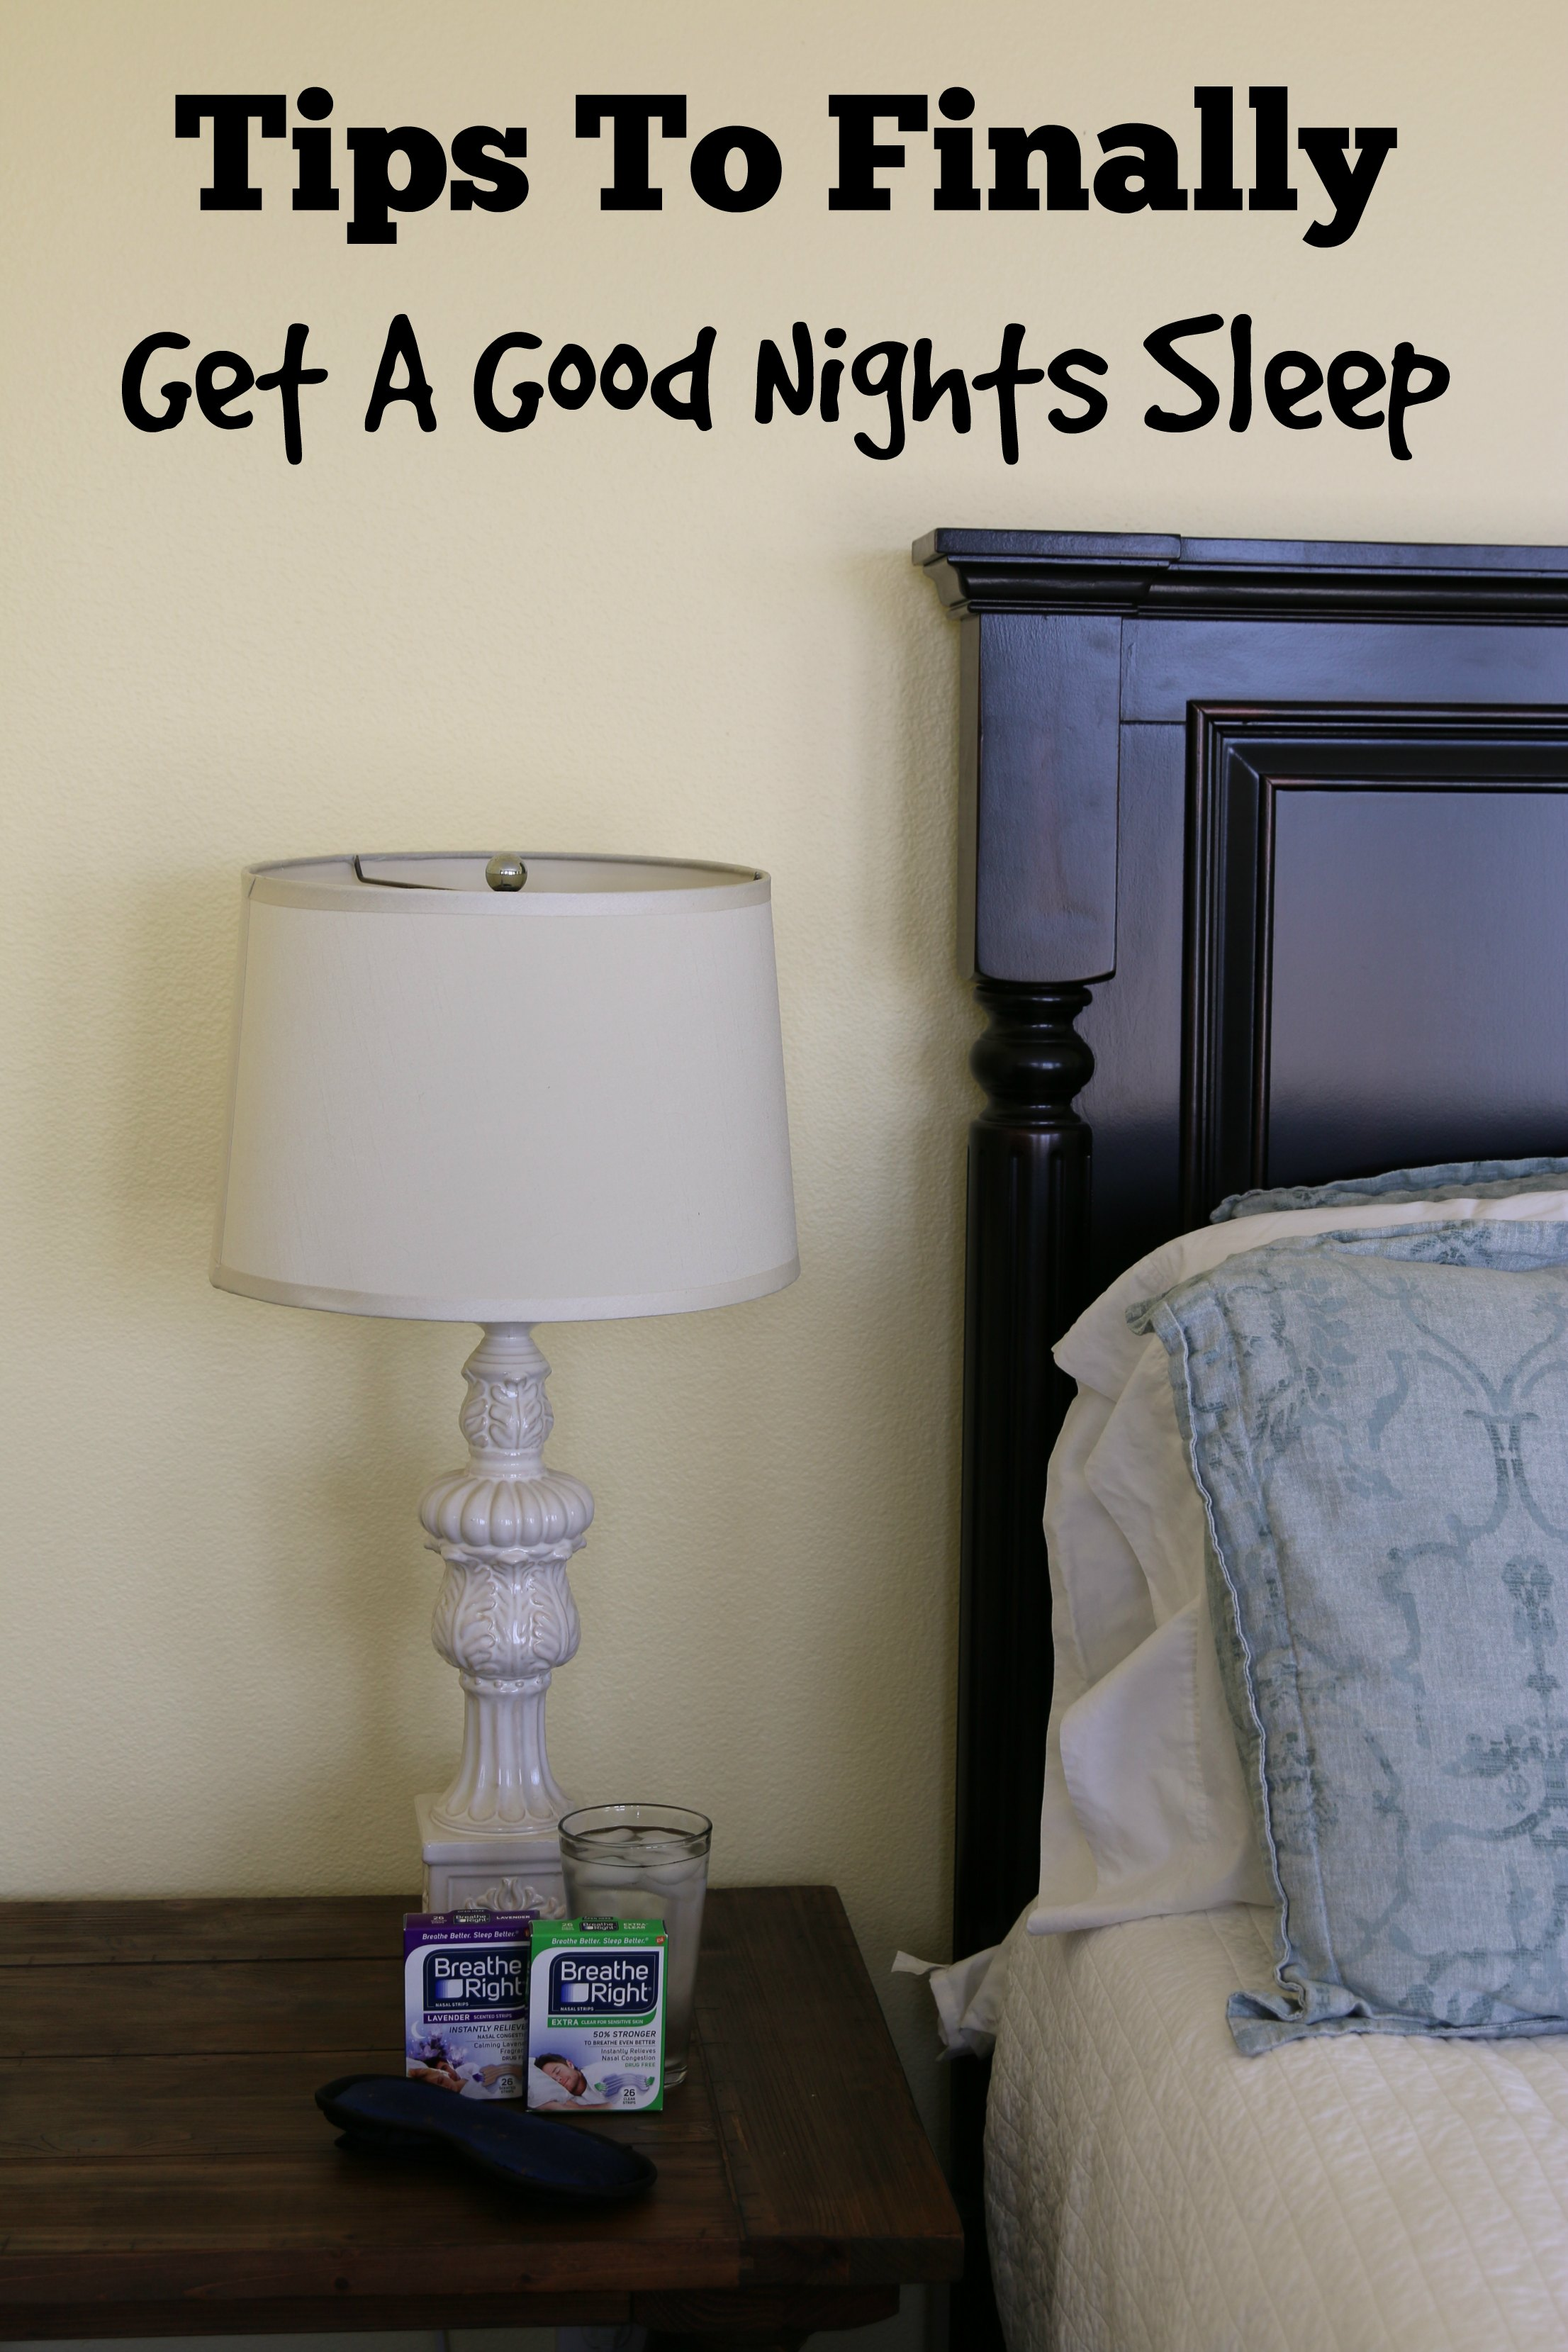 Tips To Finally Get A Good Nights Sleep